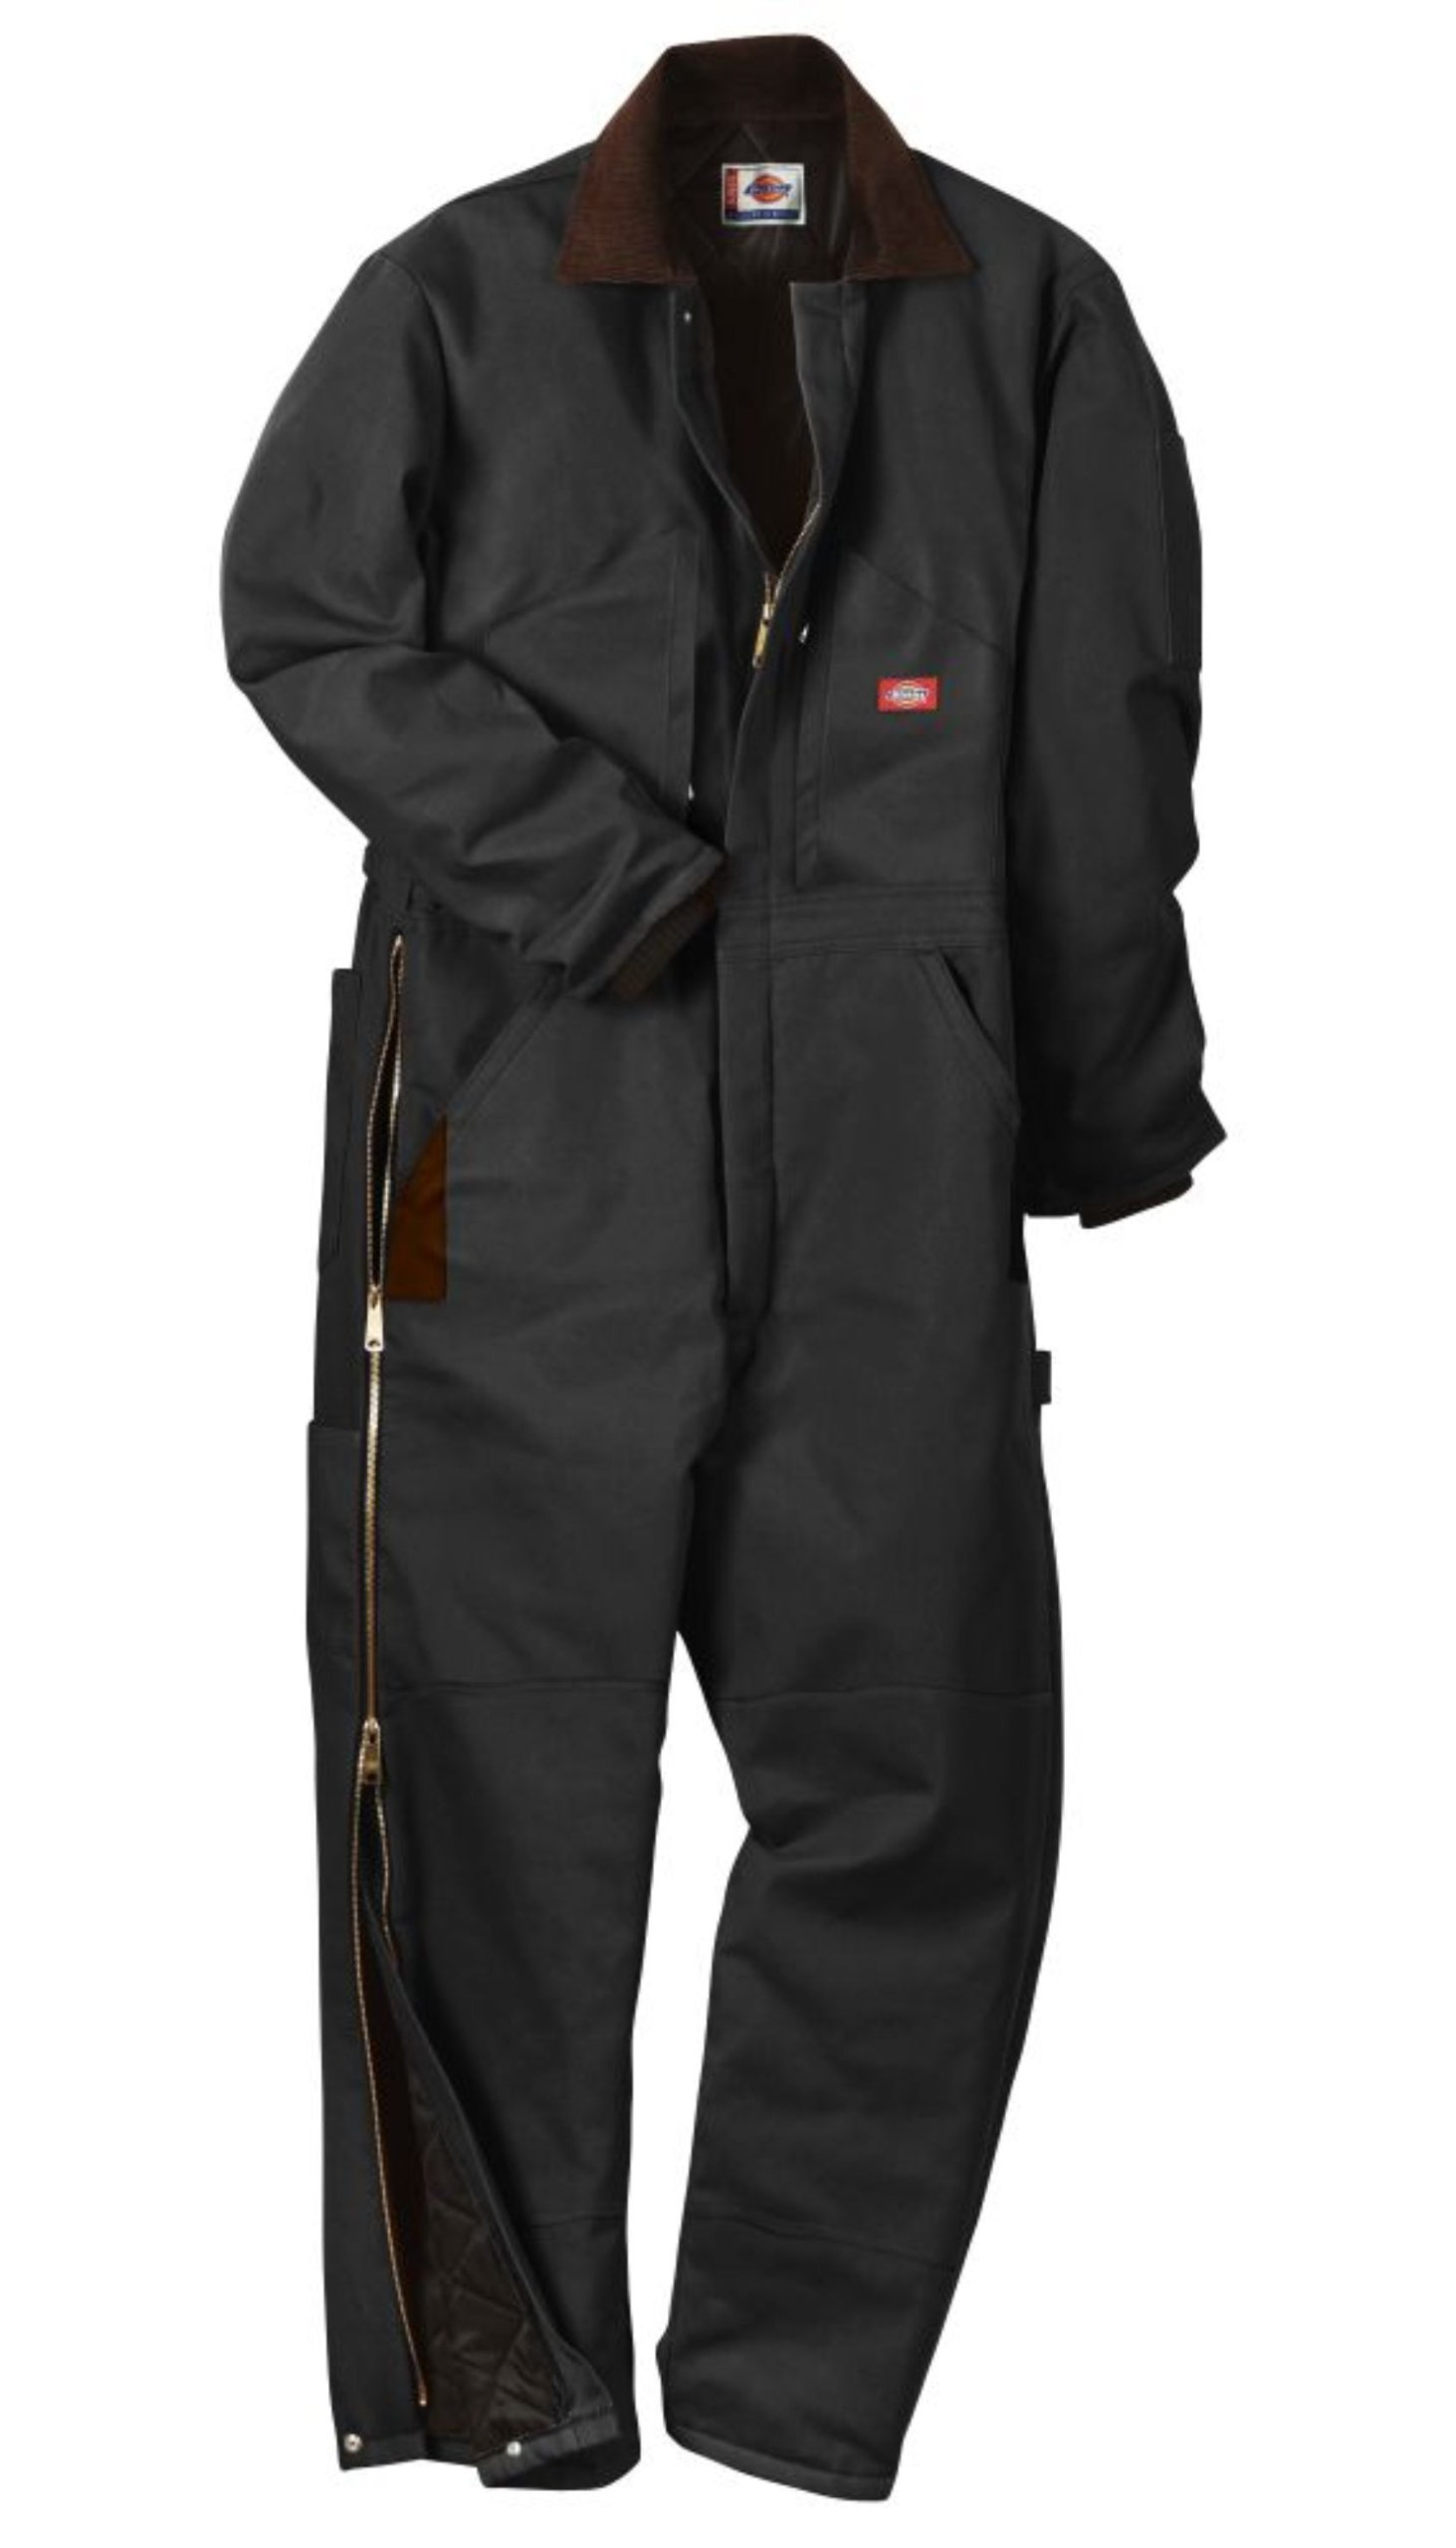 Dickies Men's Insulated Coverall, Black, Extra Large-Regular by Dickies (Image #1)